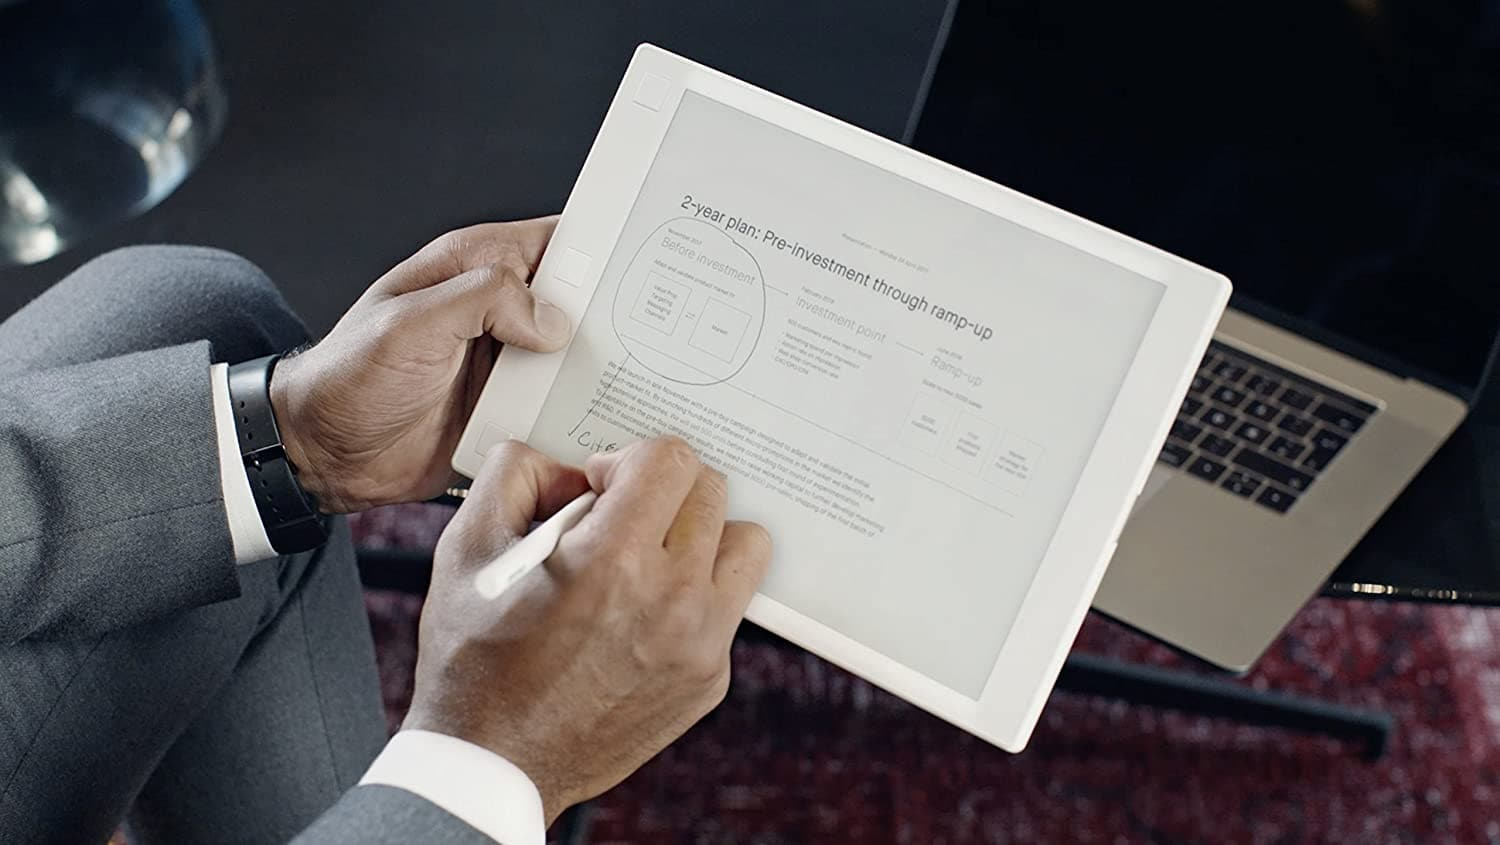 Best E-INK TABLET for Note Taking